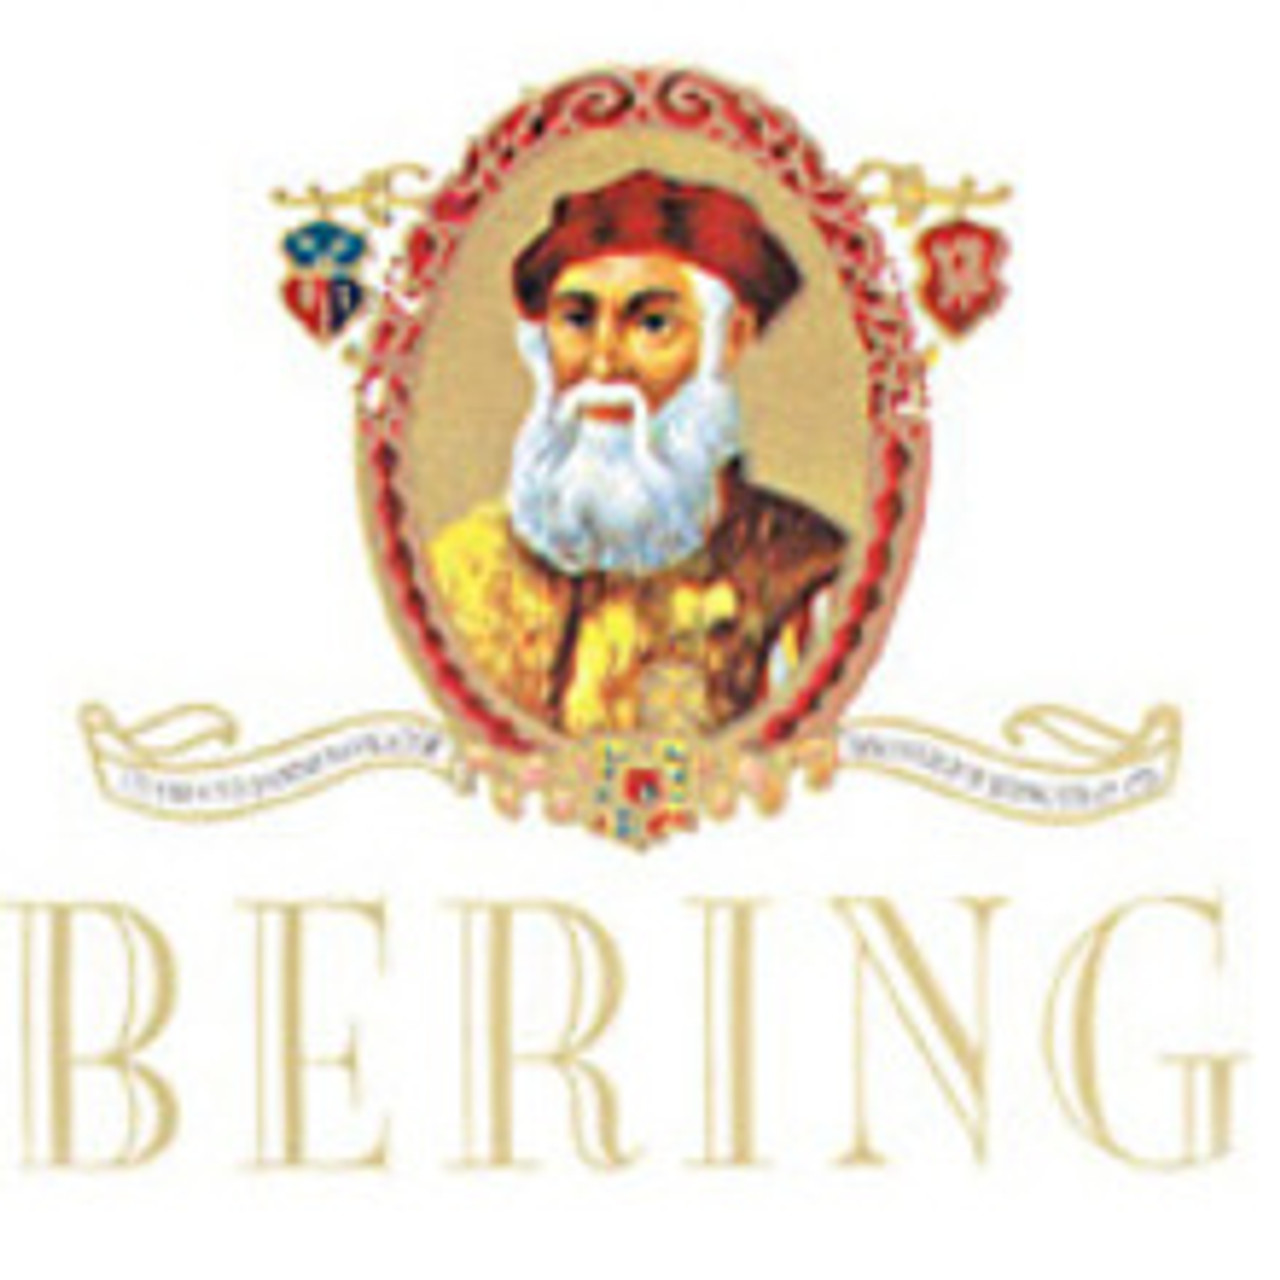 Bering It's A Girl Cigars - 5.25 x 44 (Box of 25 Aluminum Tubes)